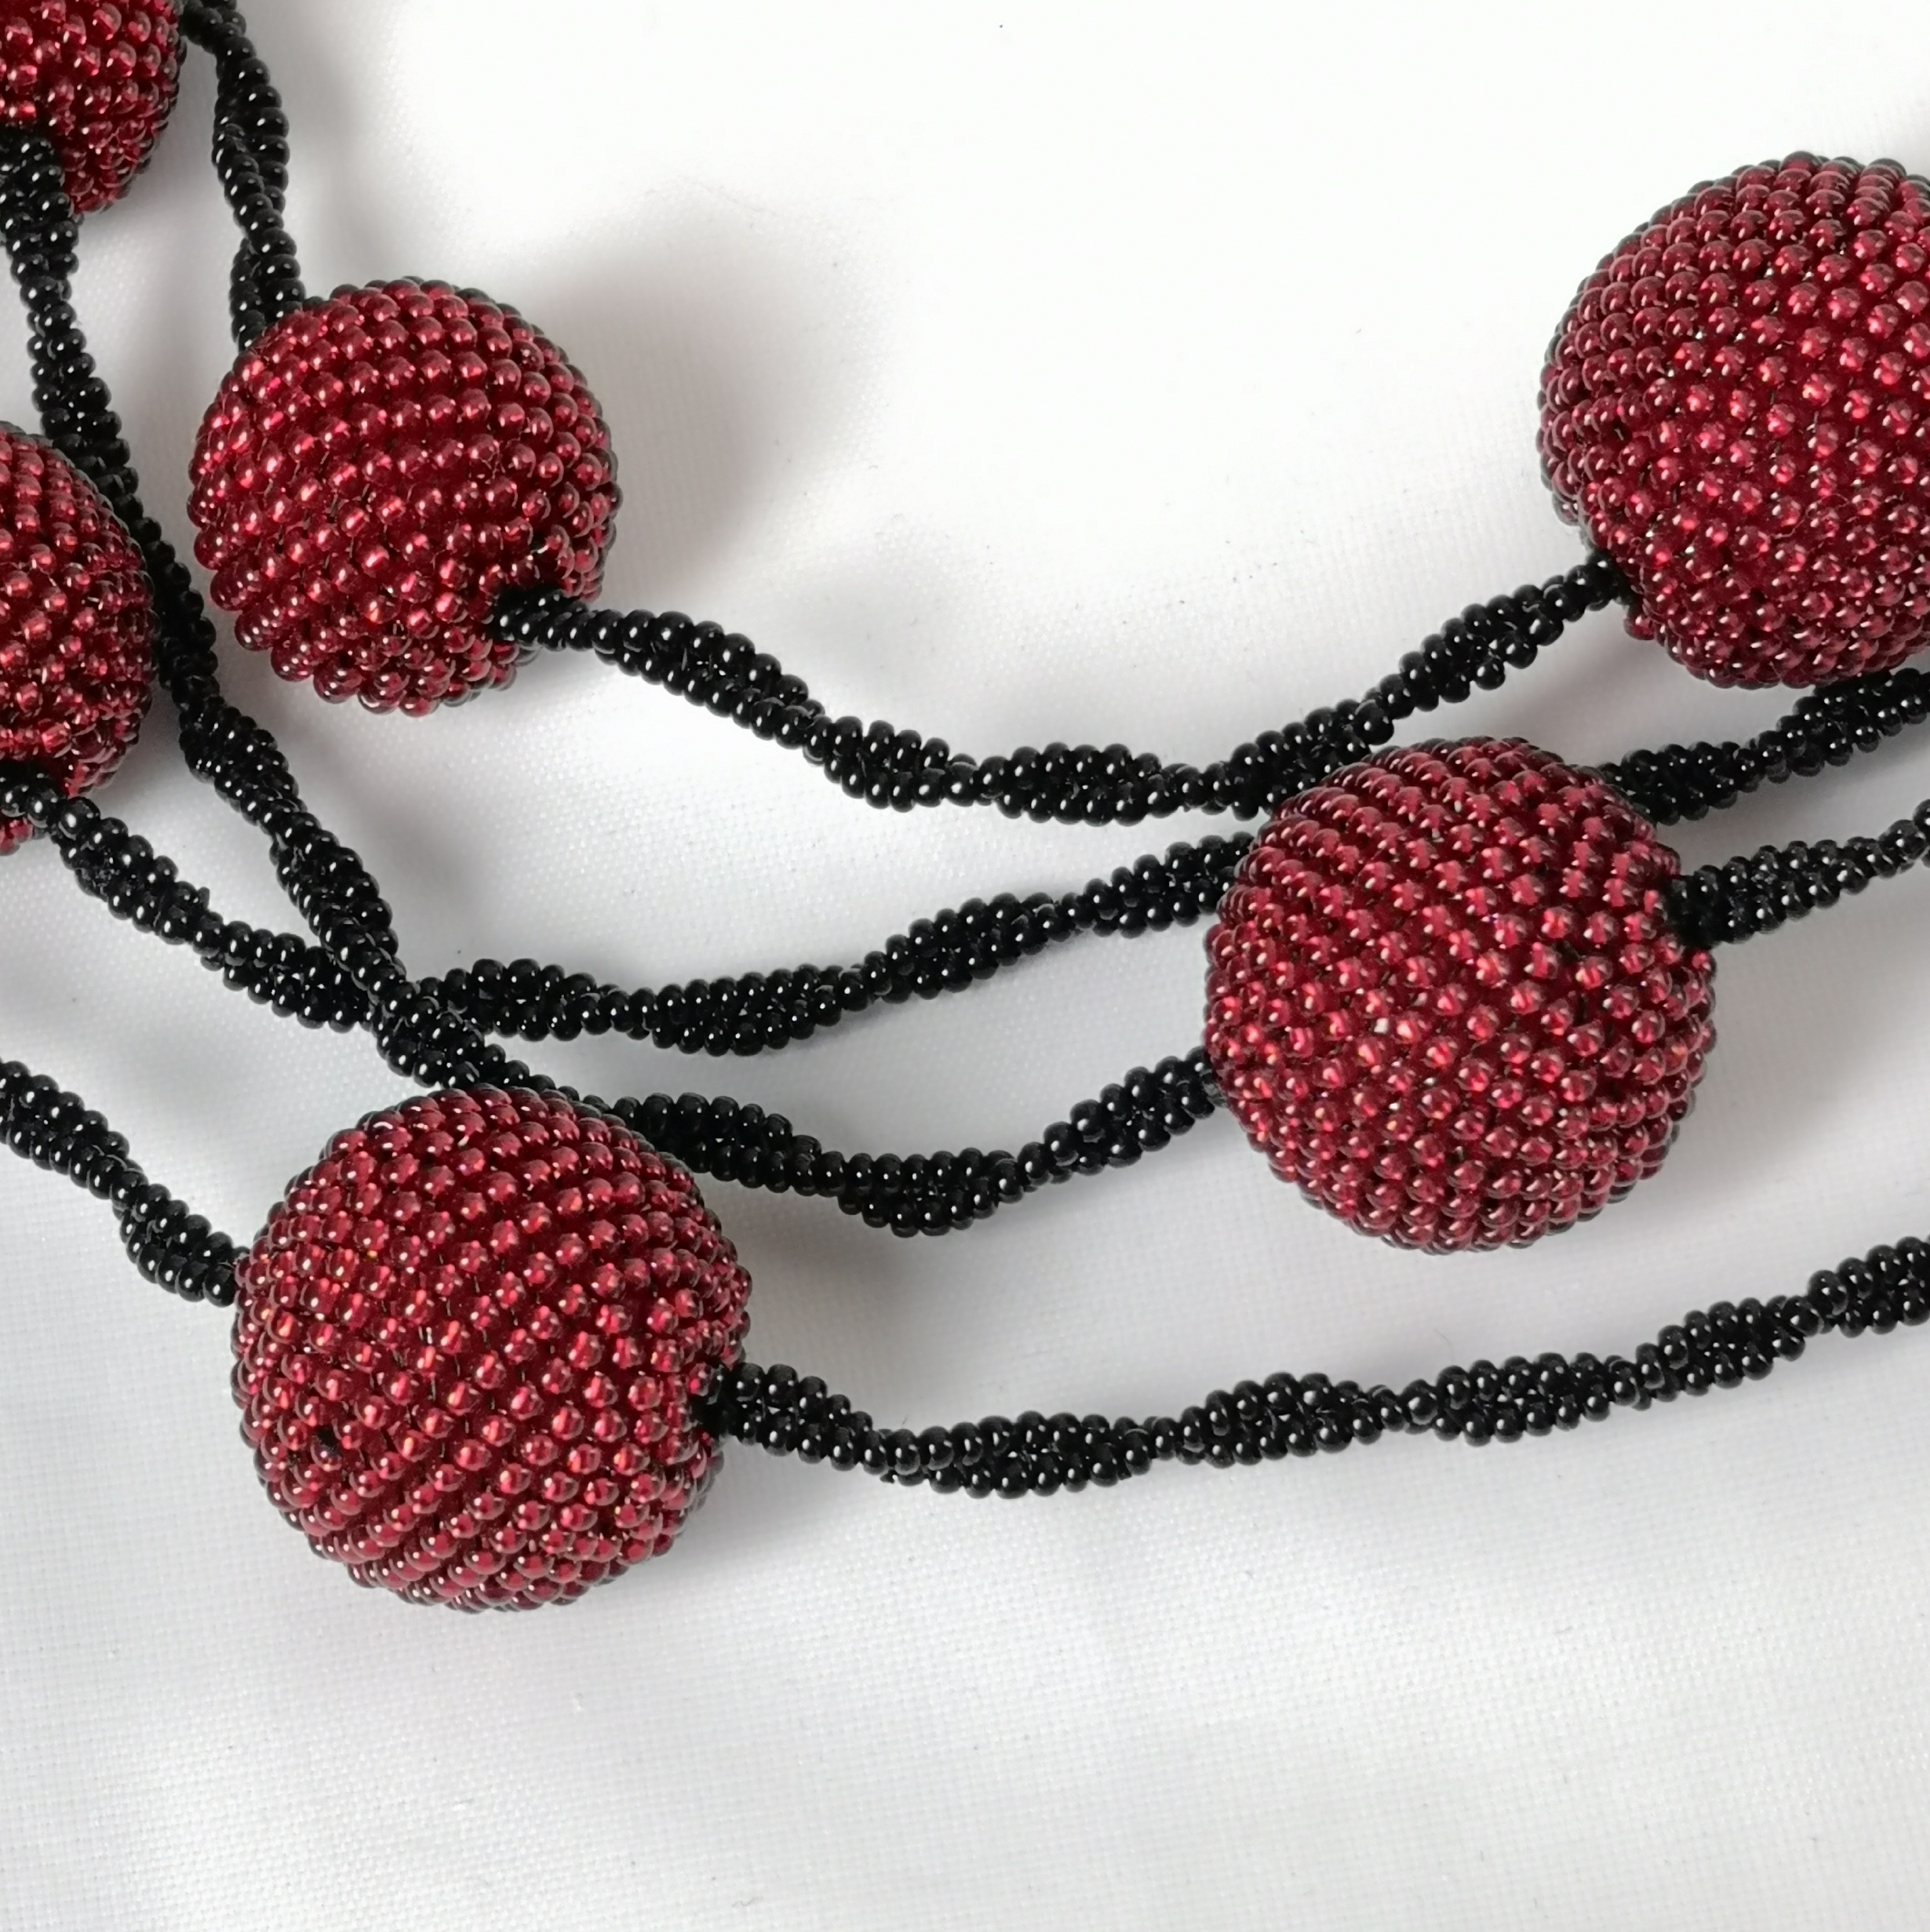 seed beads necklac (16)20069